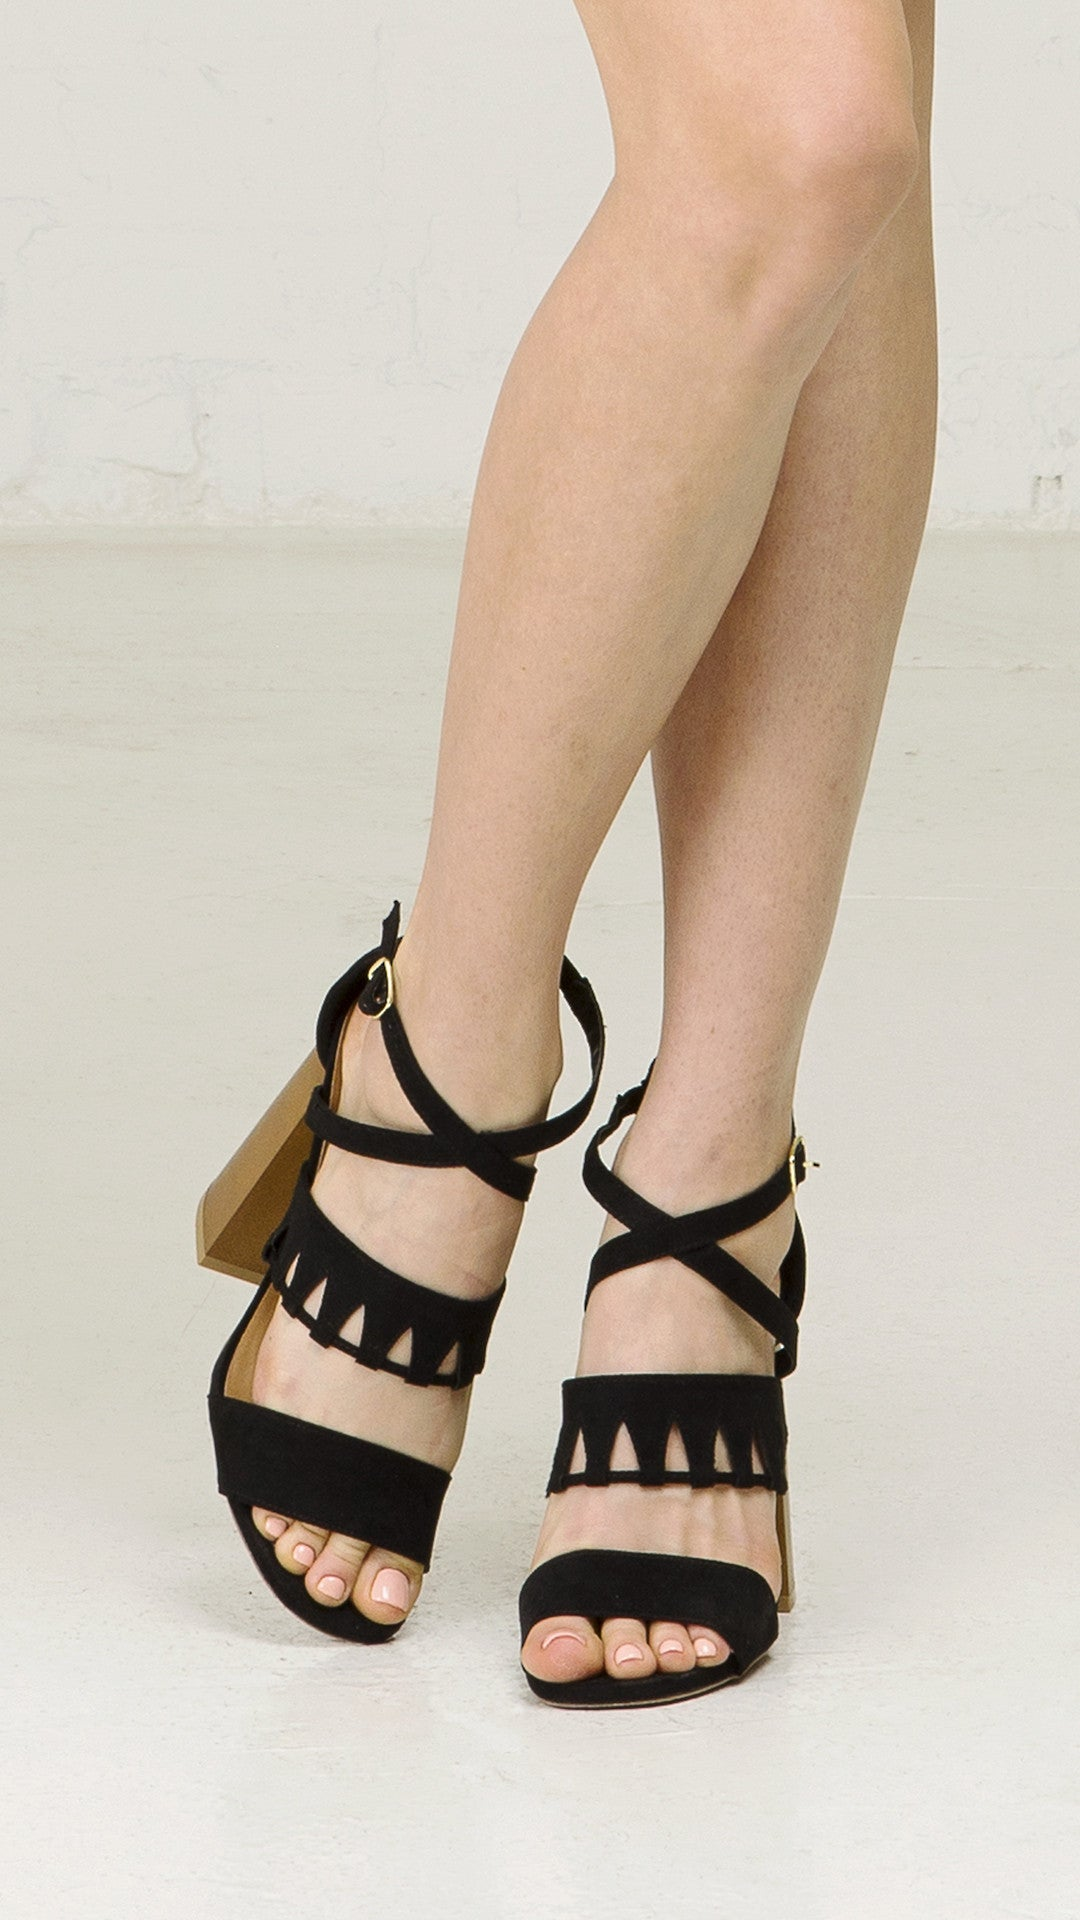 6680e253abd Cutout Strappy Sandal With Block Heel - ANGL